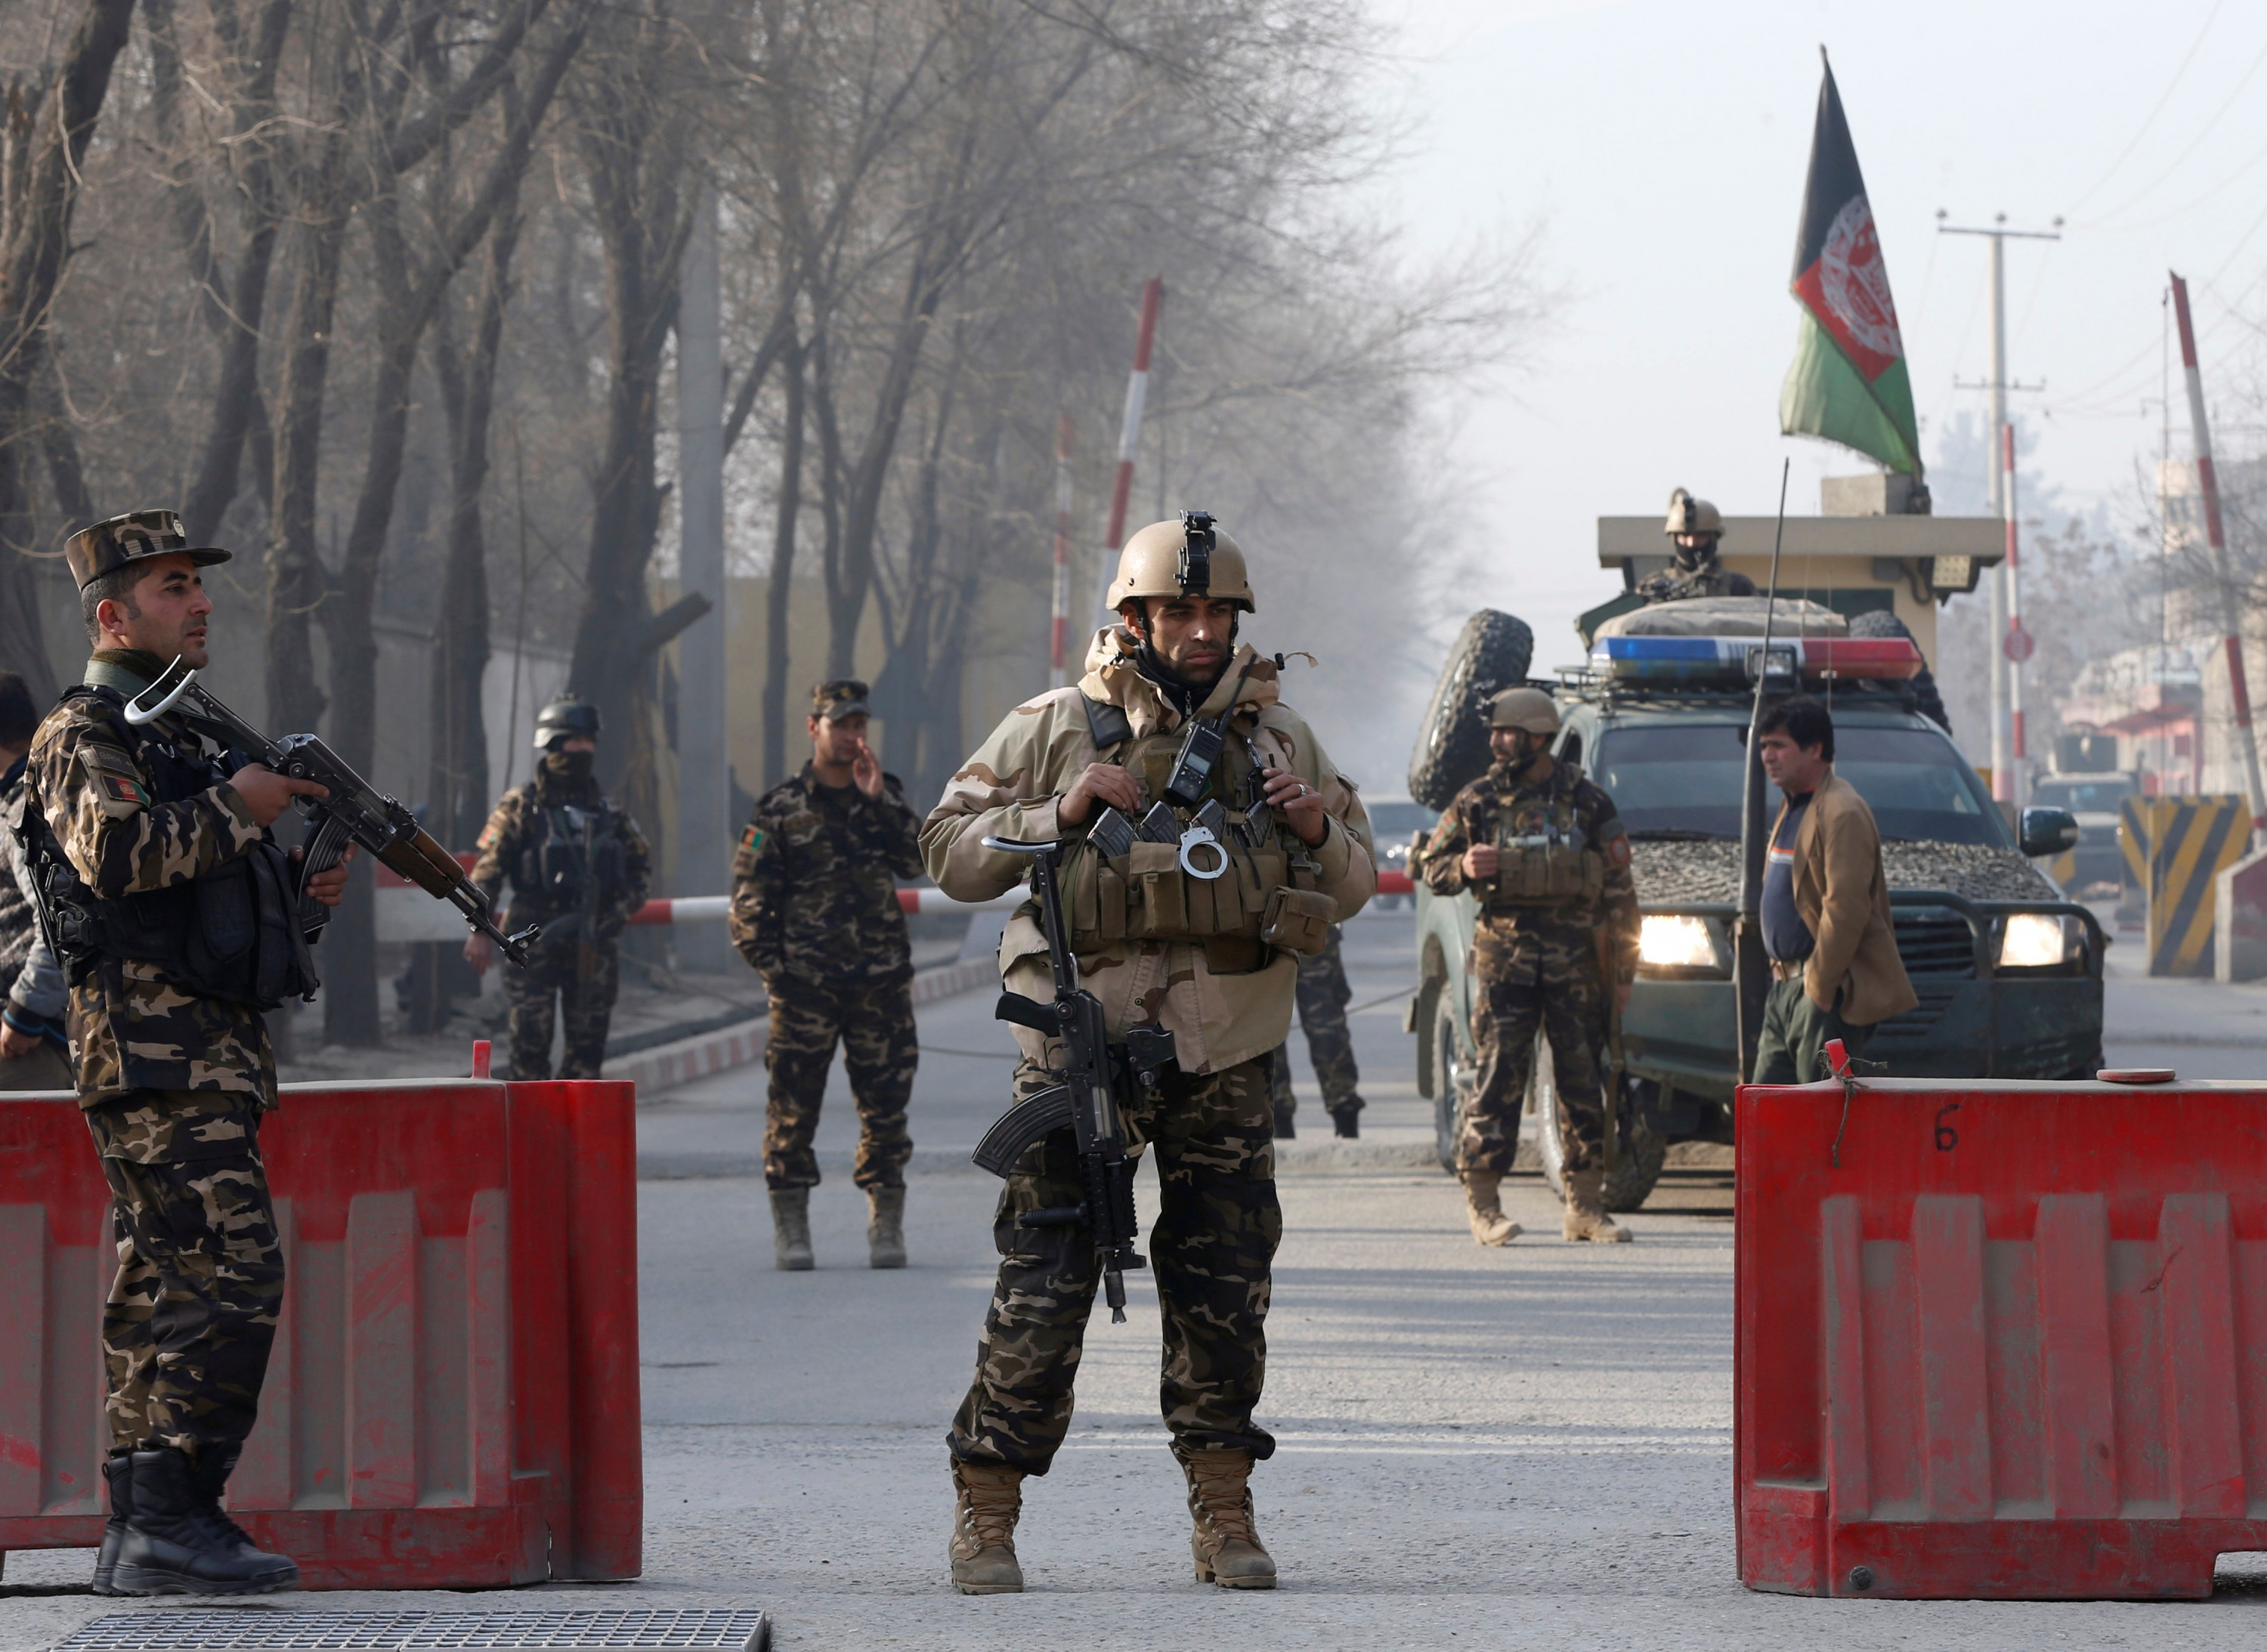 Bombing Attack Kills 41 In Kabul; ISIS Claims Responsibility